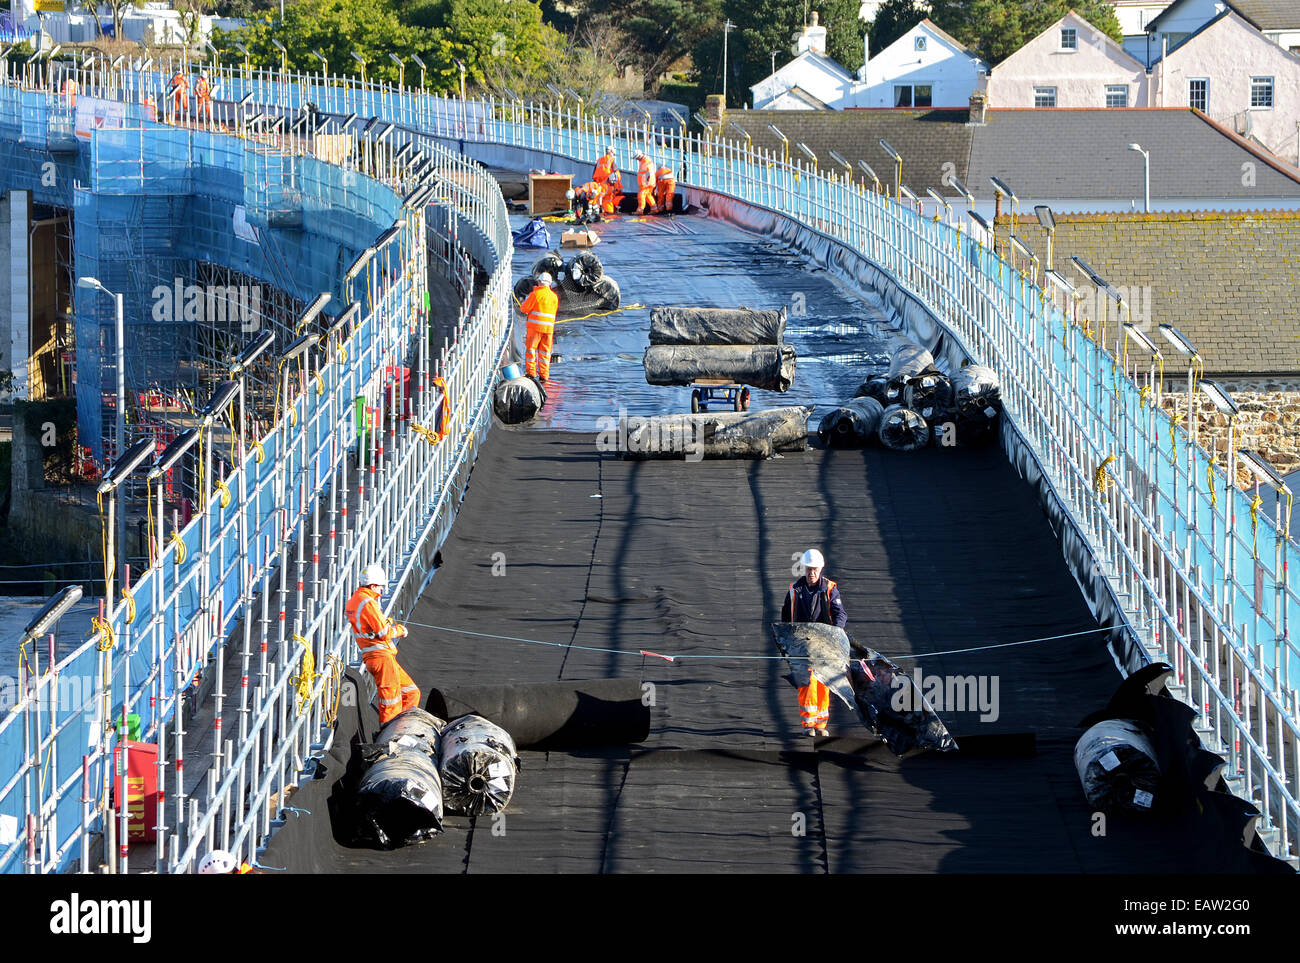 Workmen on the rail track during repairs to Hayle viaduct in Cornwall, UK - Stock Image